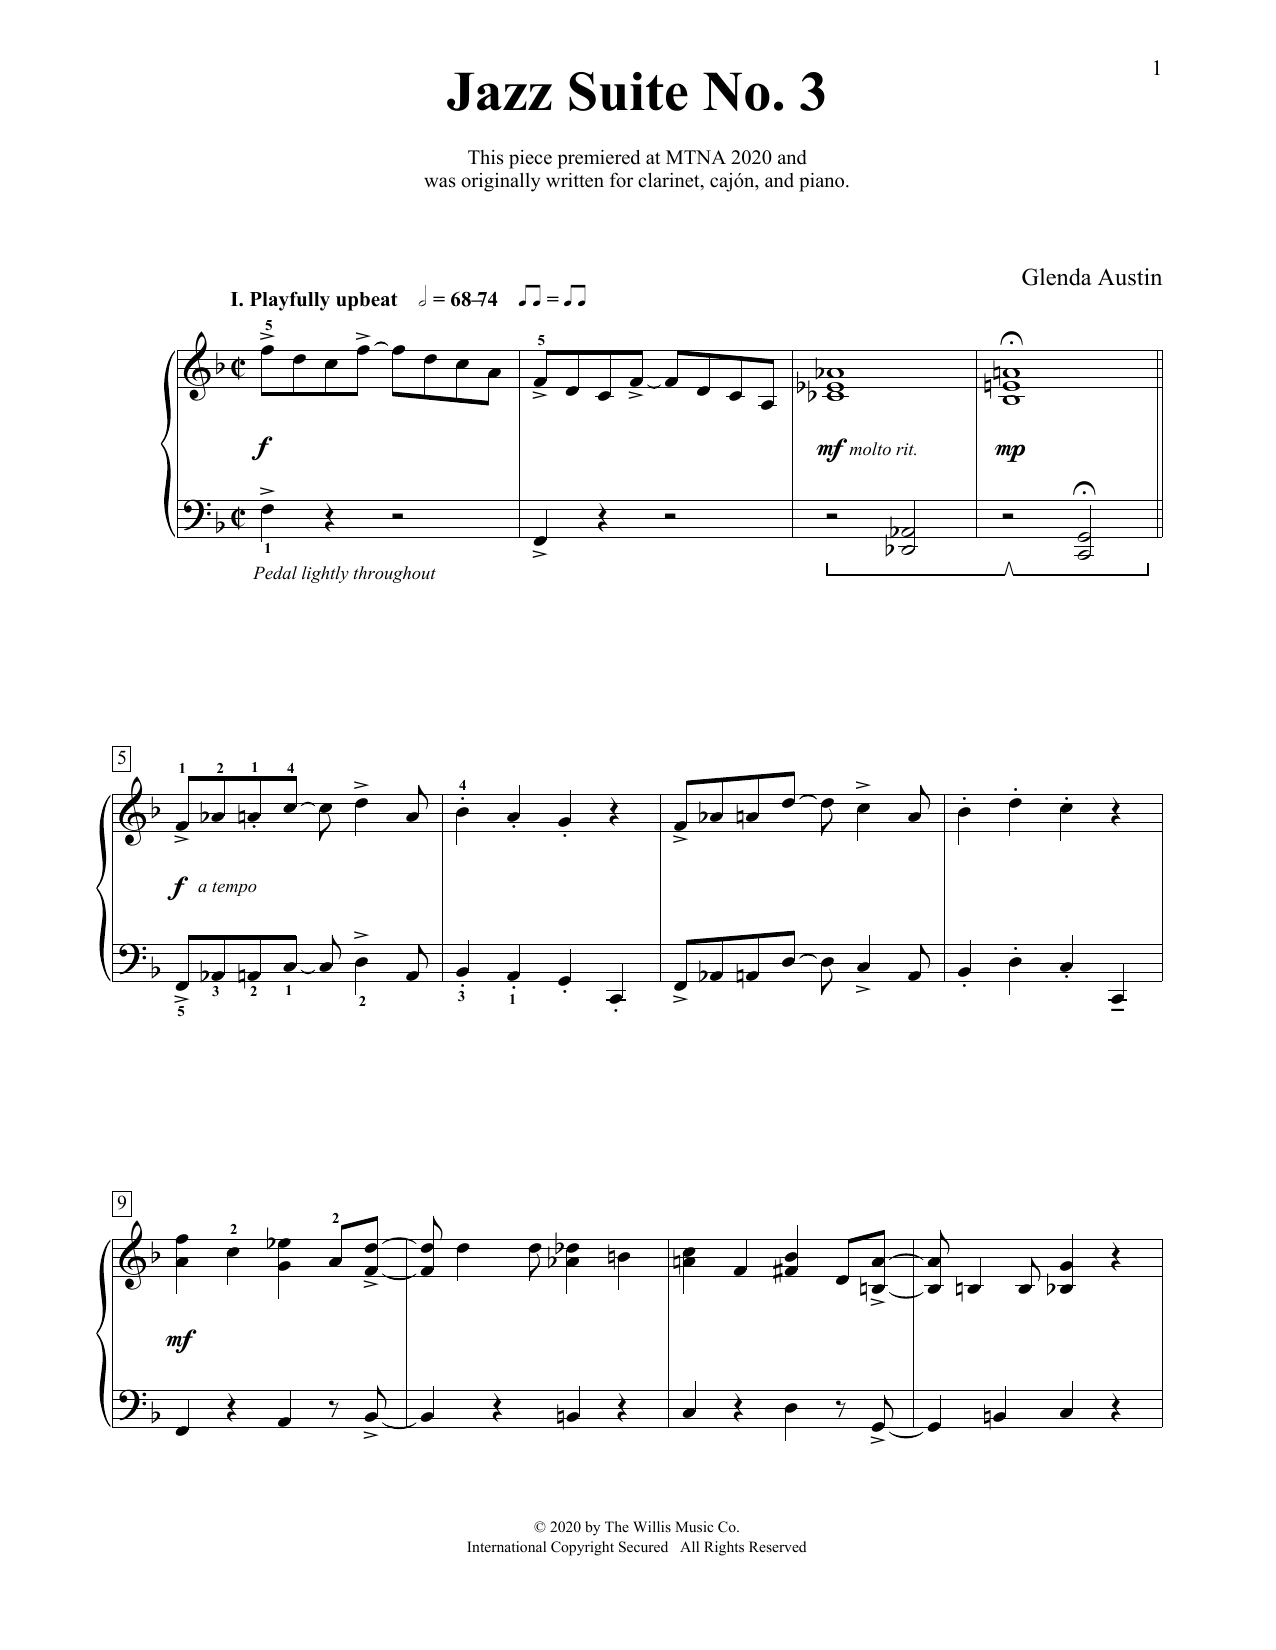 Download Glenda Austin 'Jazz Suite No. 3' Digital Sheet Music Notes & Chords and start playing in minutes